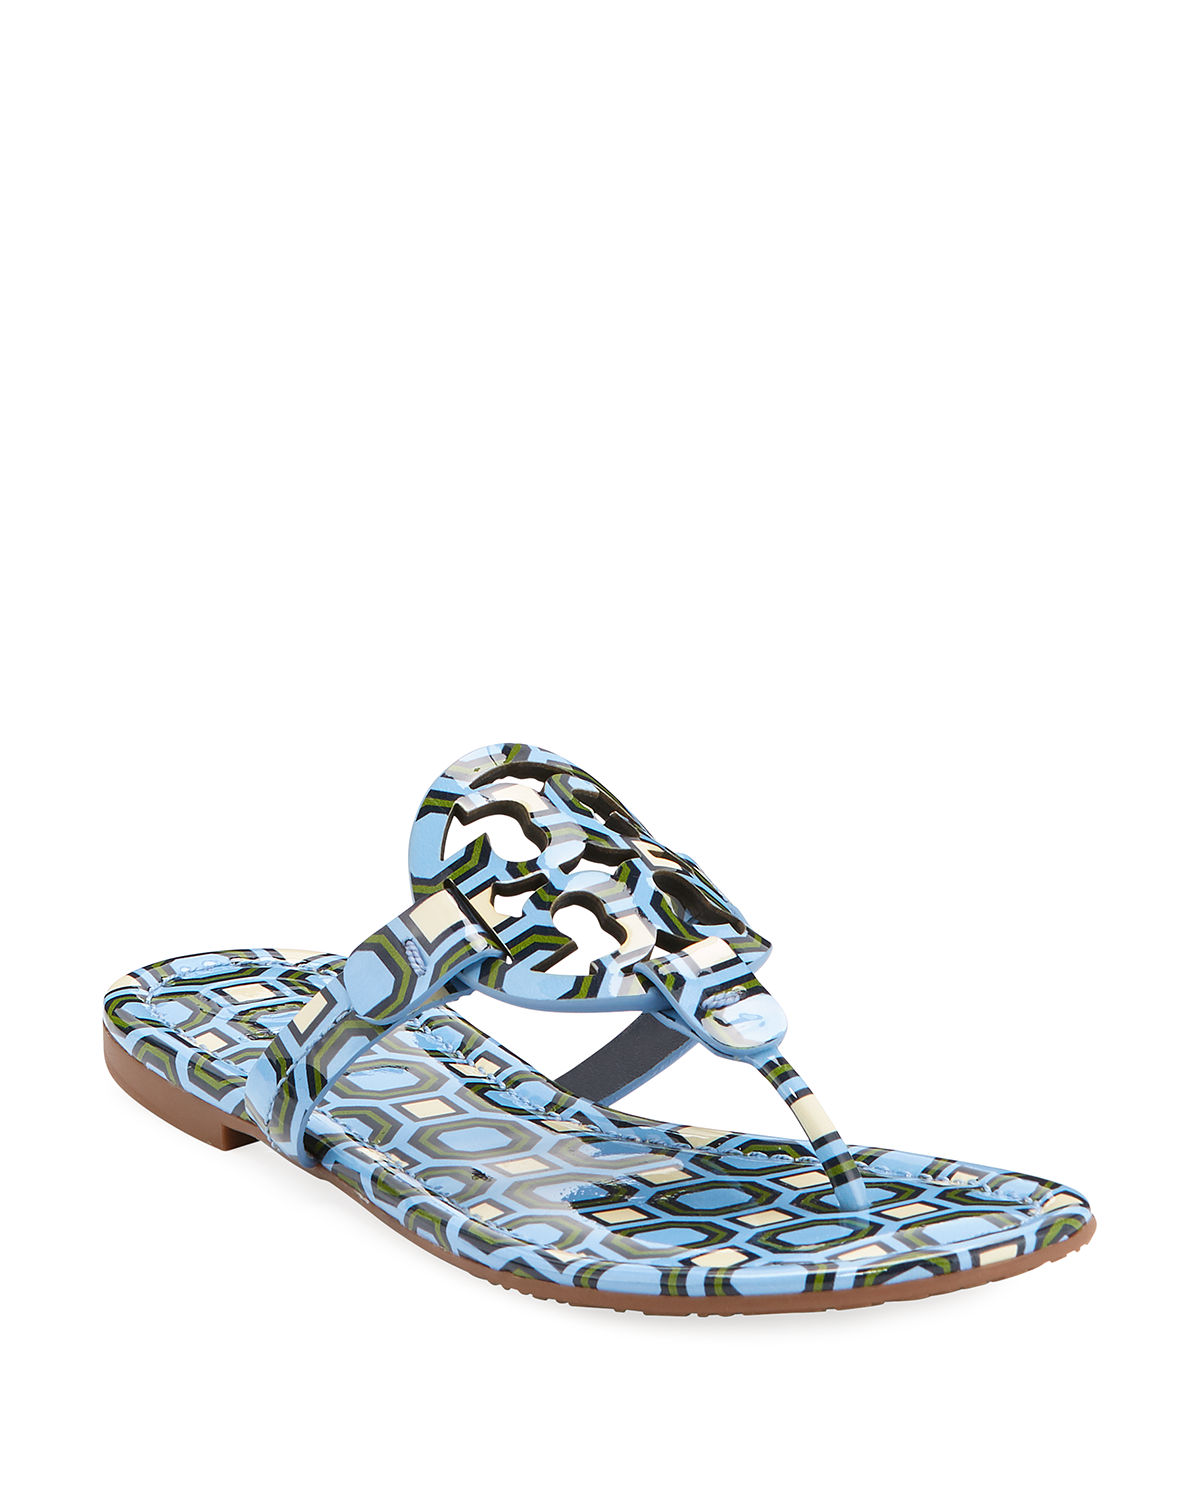 47ad0ef07c07 Tory Burch Women S Miller Patent Leather Thong Sandals In Light Chambray